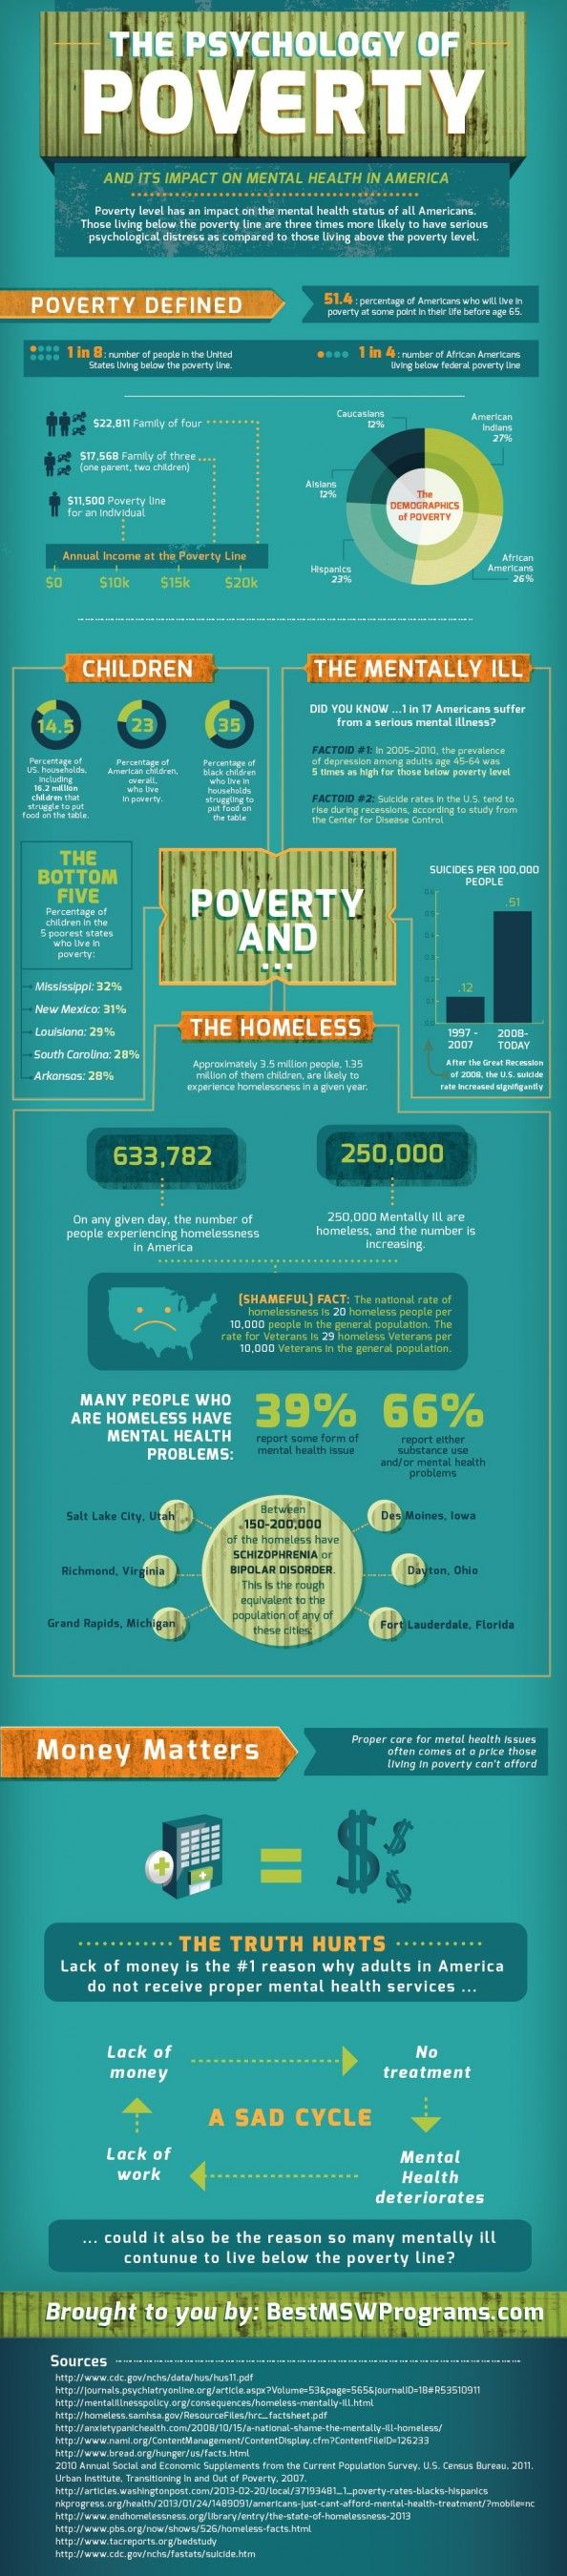 Poverty in America Infographic